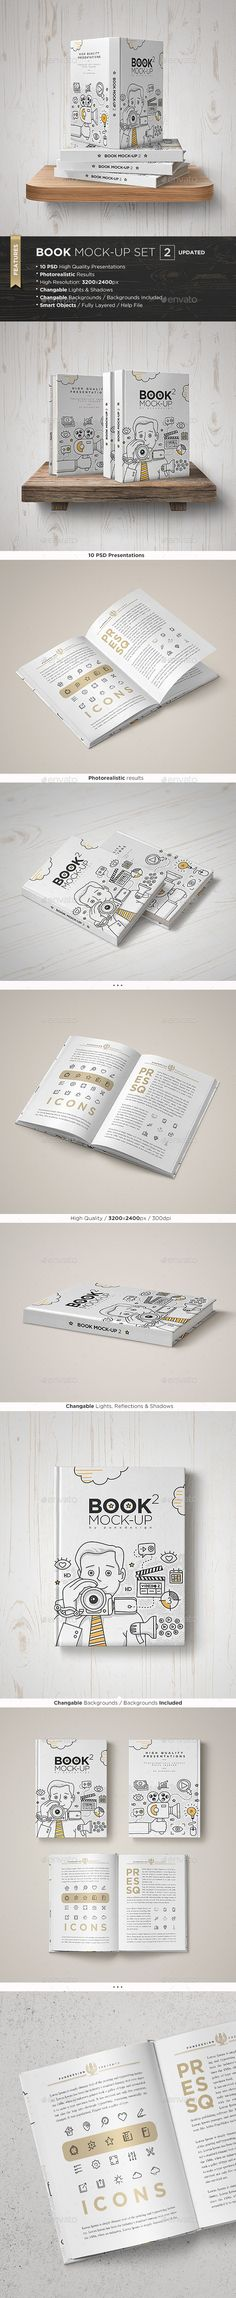 Book Mock-Up  PSD  Template • Only available here ➝ http://graphicriver.net/item/book-mockup-set-2/5278424?ref=pxcr